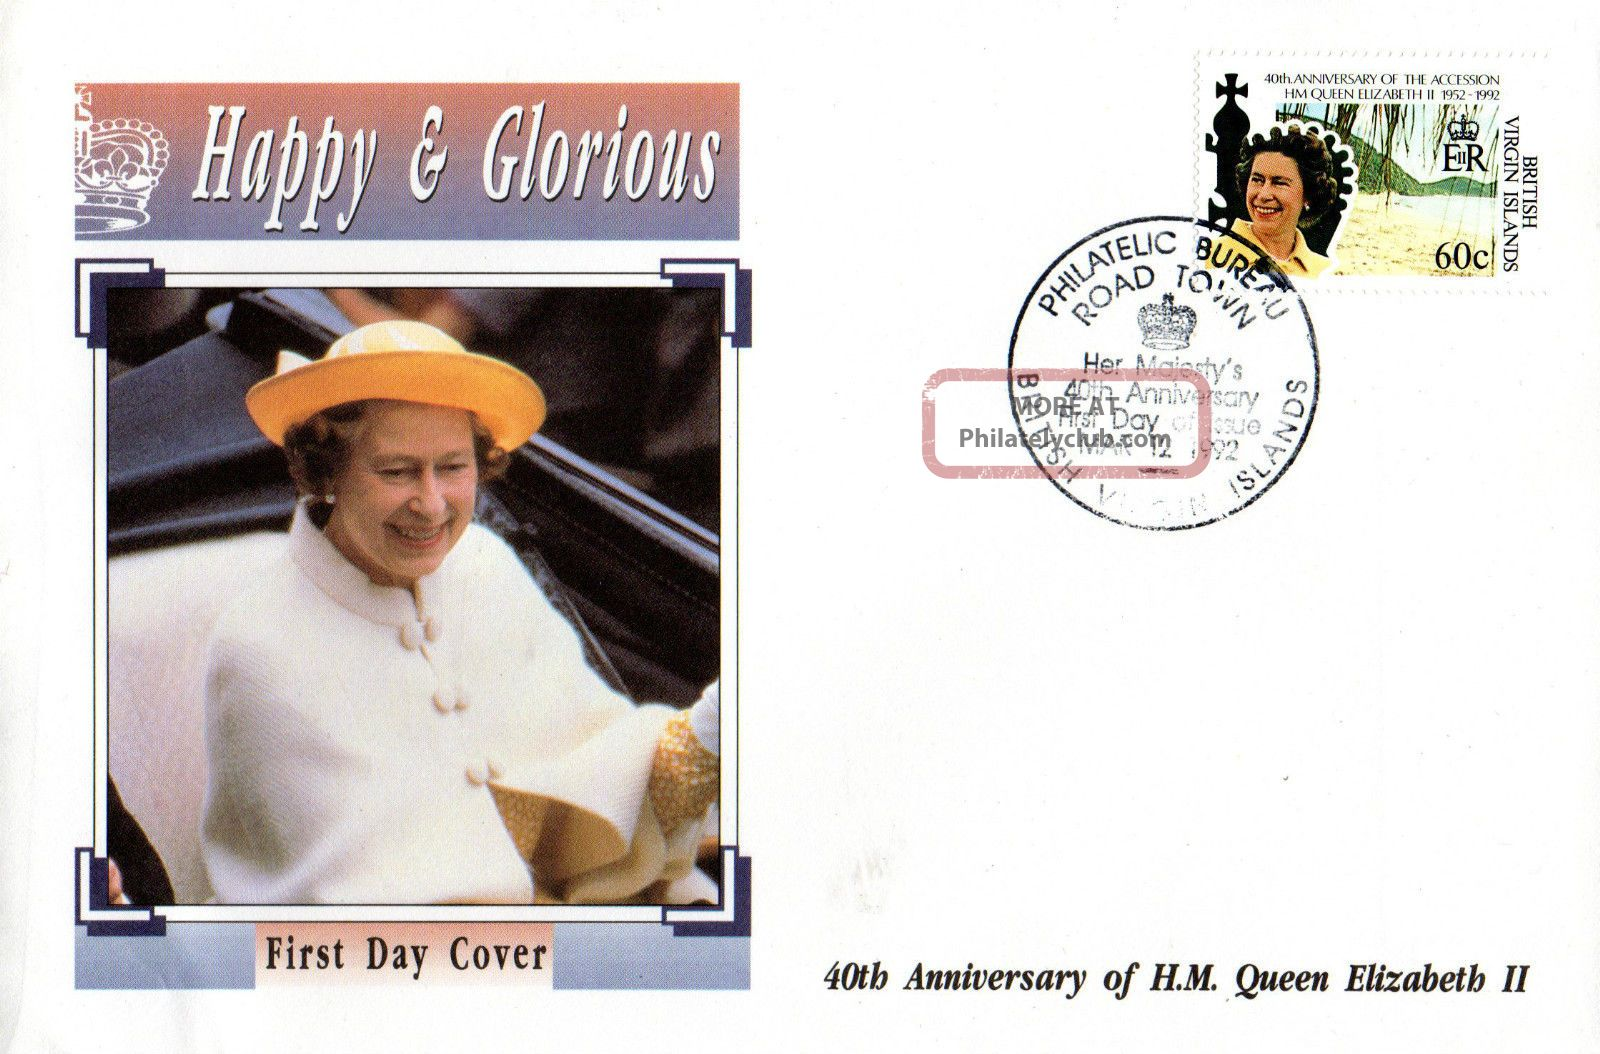 British Virgin Islands 12 March 1992 Happy And Glorious 60c First Day Cover Shs British Colonies & Territories photo